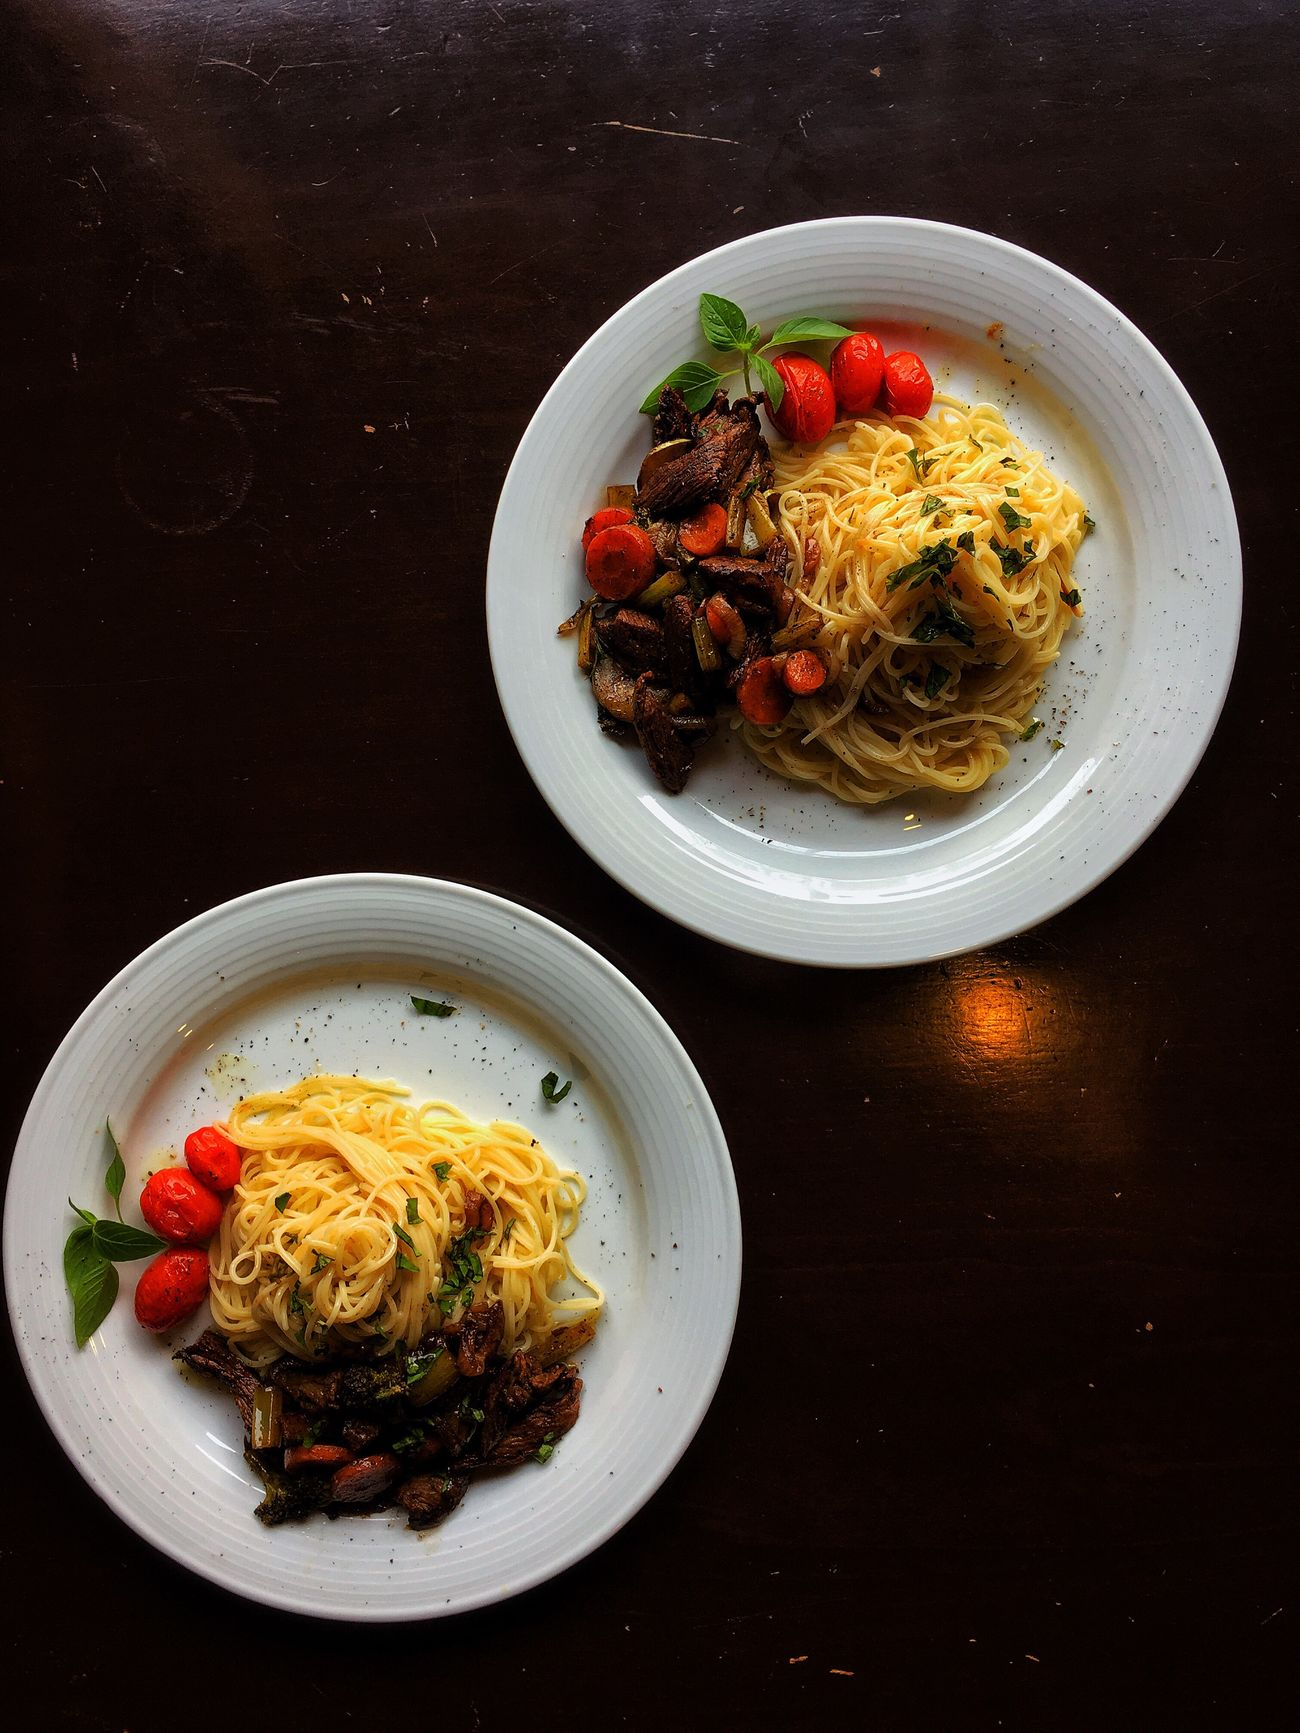 Pasta Food Plate Ready-to-eat Food And Drink Italian Food Freshness Healthy Eating Table Serving Size Bowl No People Indoors  High Angle View Spaghetti Savory Food Meal Indulgence Meat Lunch Visual Feast